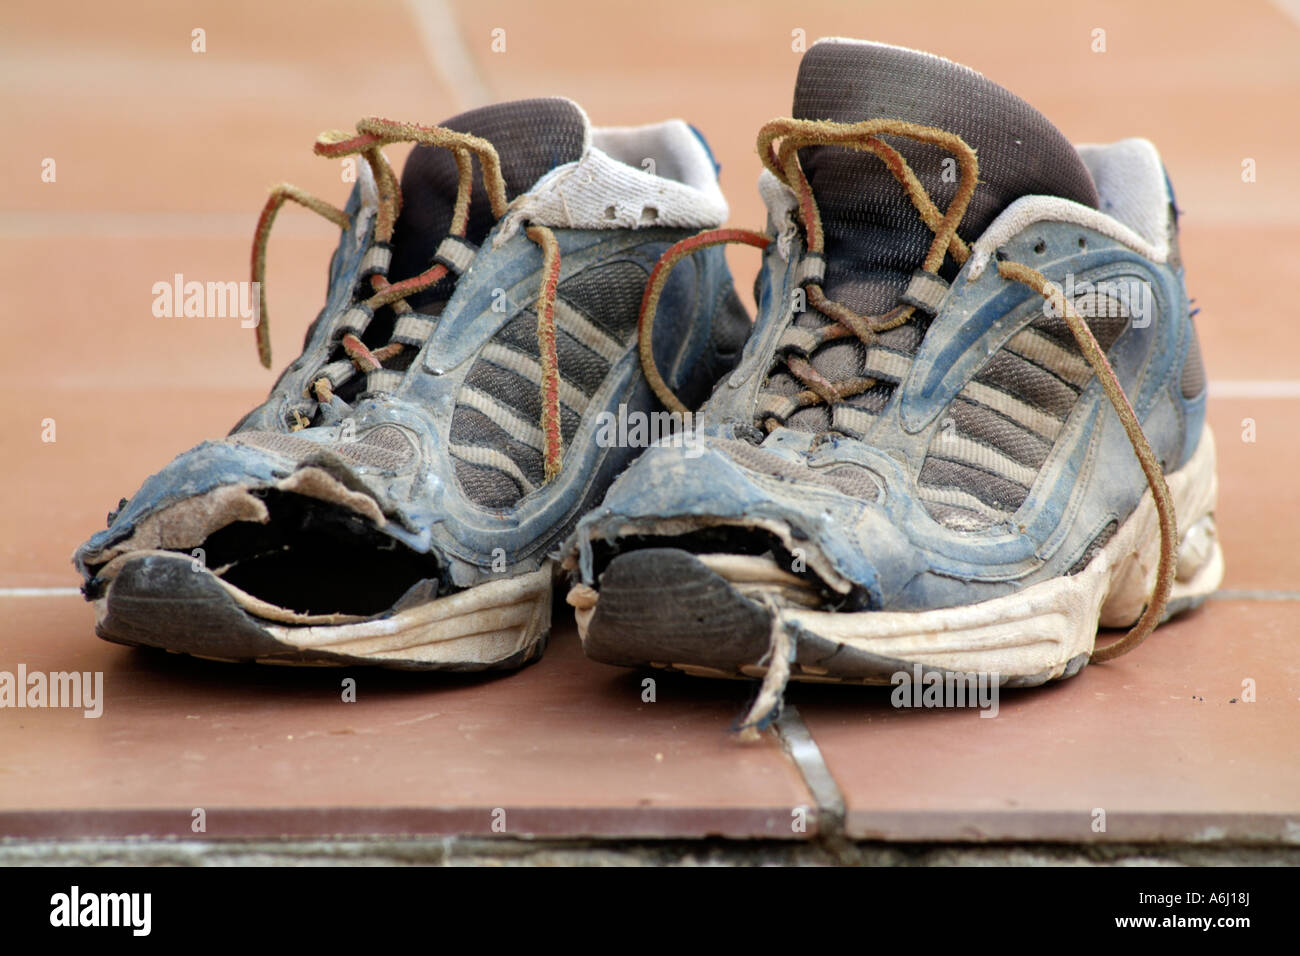 Old trainers. Worn out shoes - Stock Image